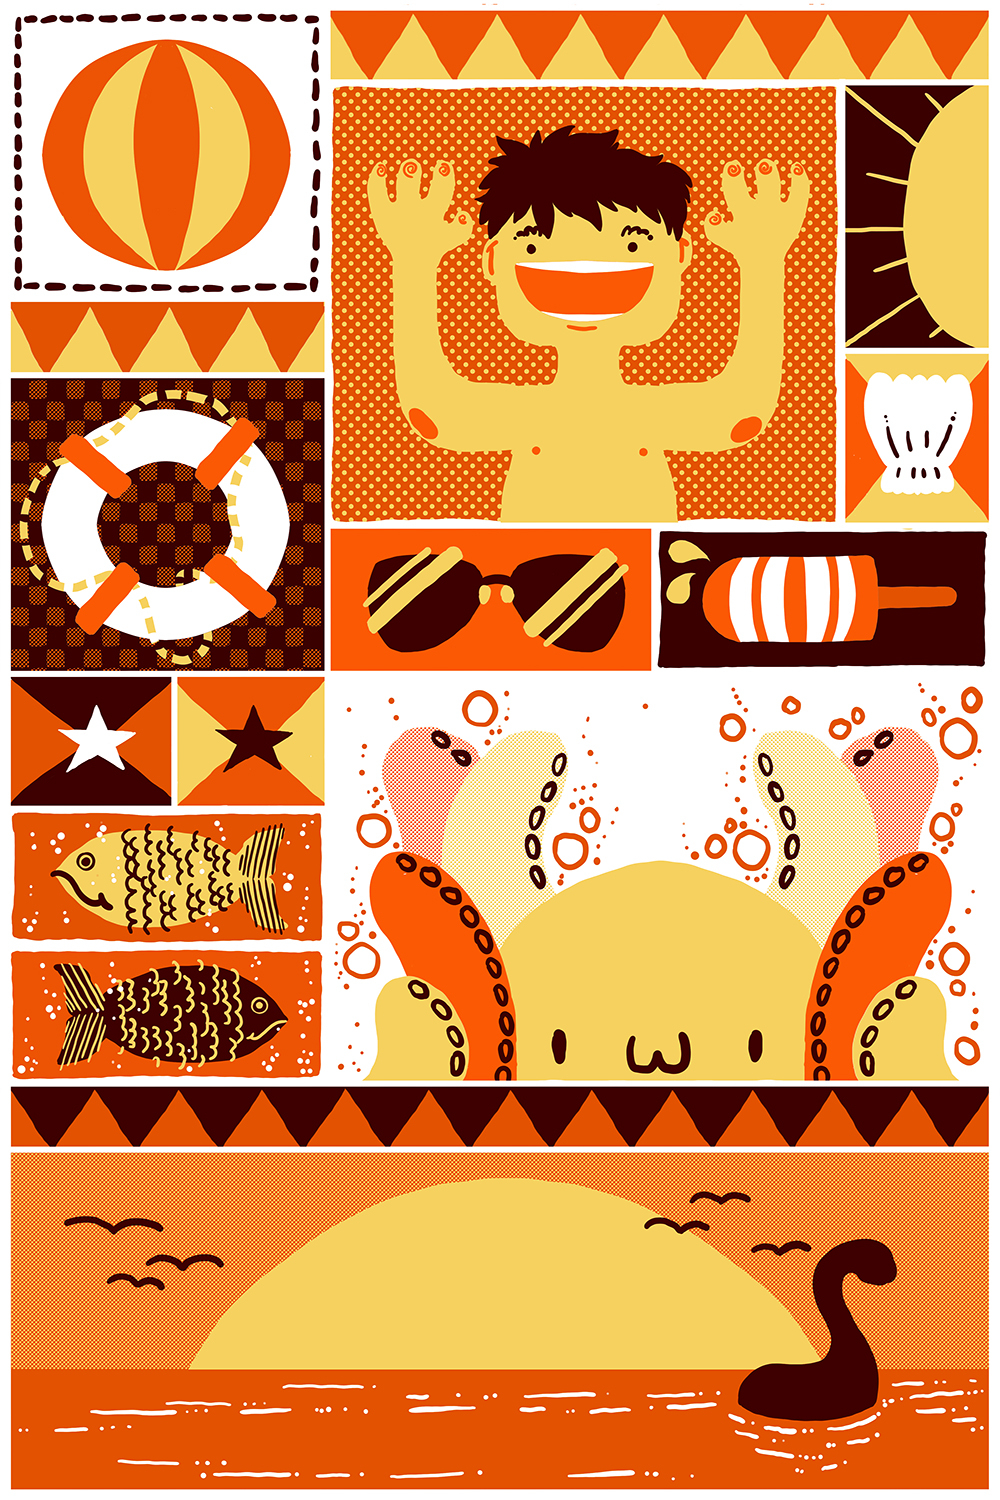 an orange and white print showing many summer beach elements like ice cream, a beach ball, fish, and the sun